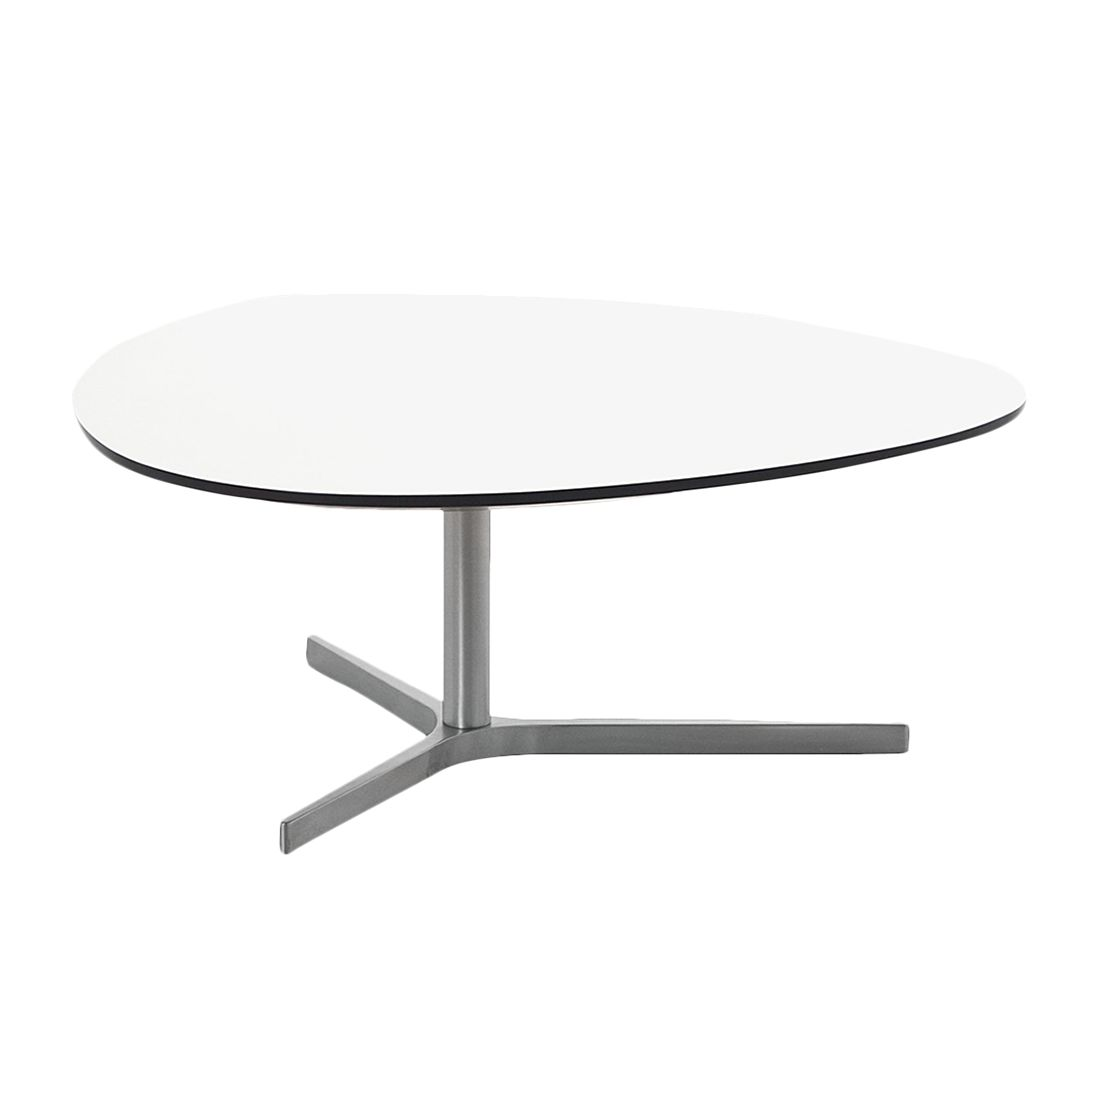 Table basse Plectorious I - Blanc, Morteens